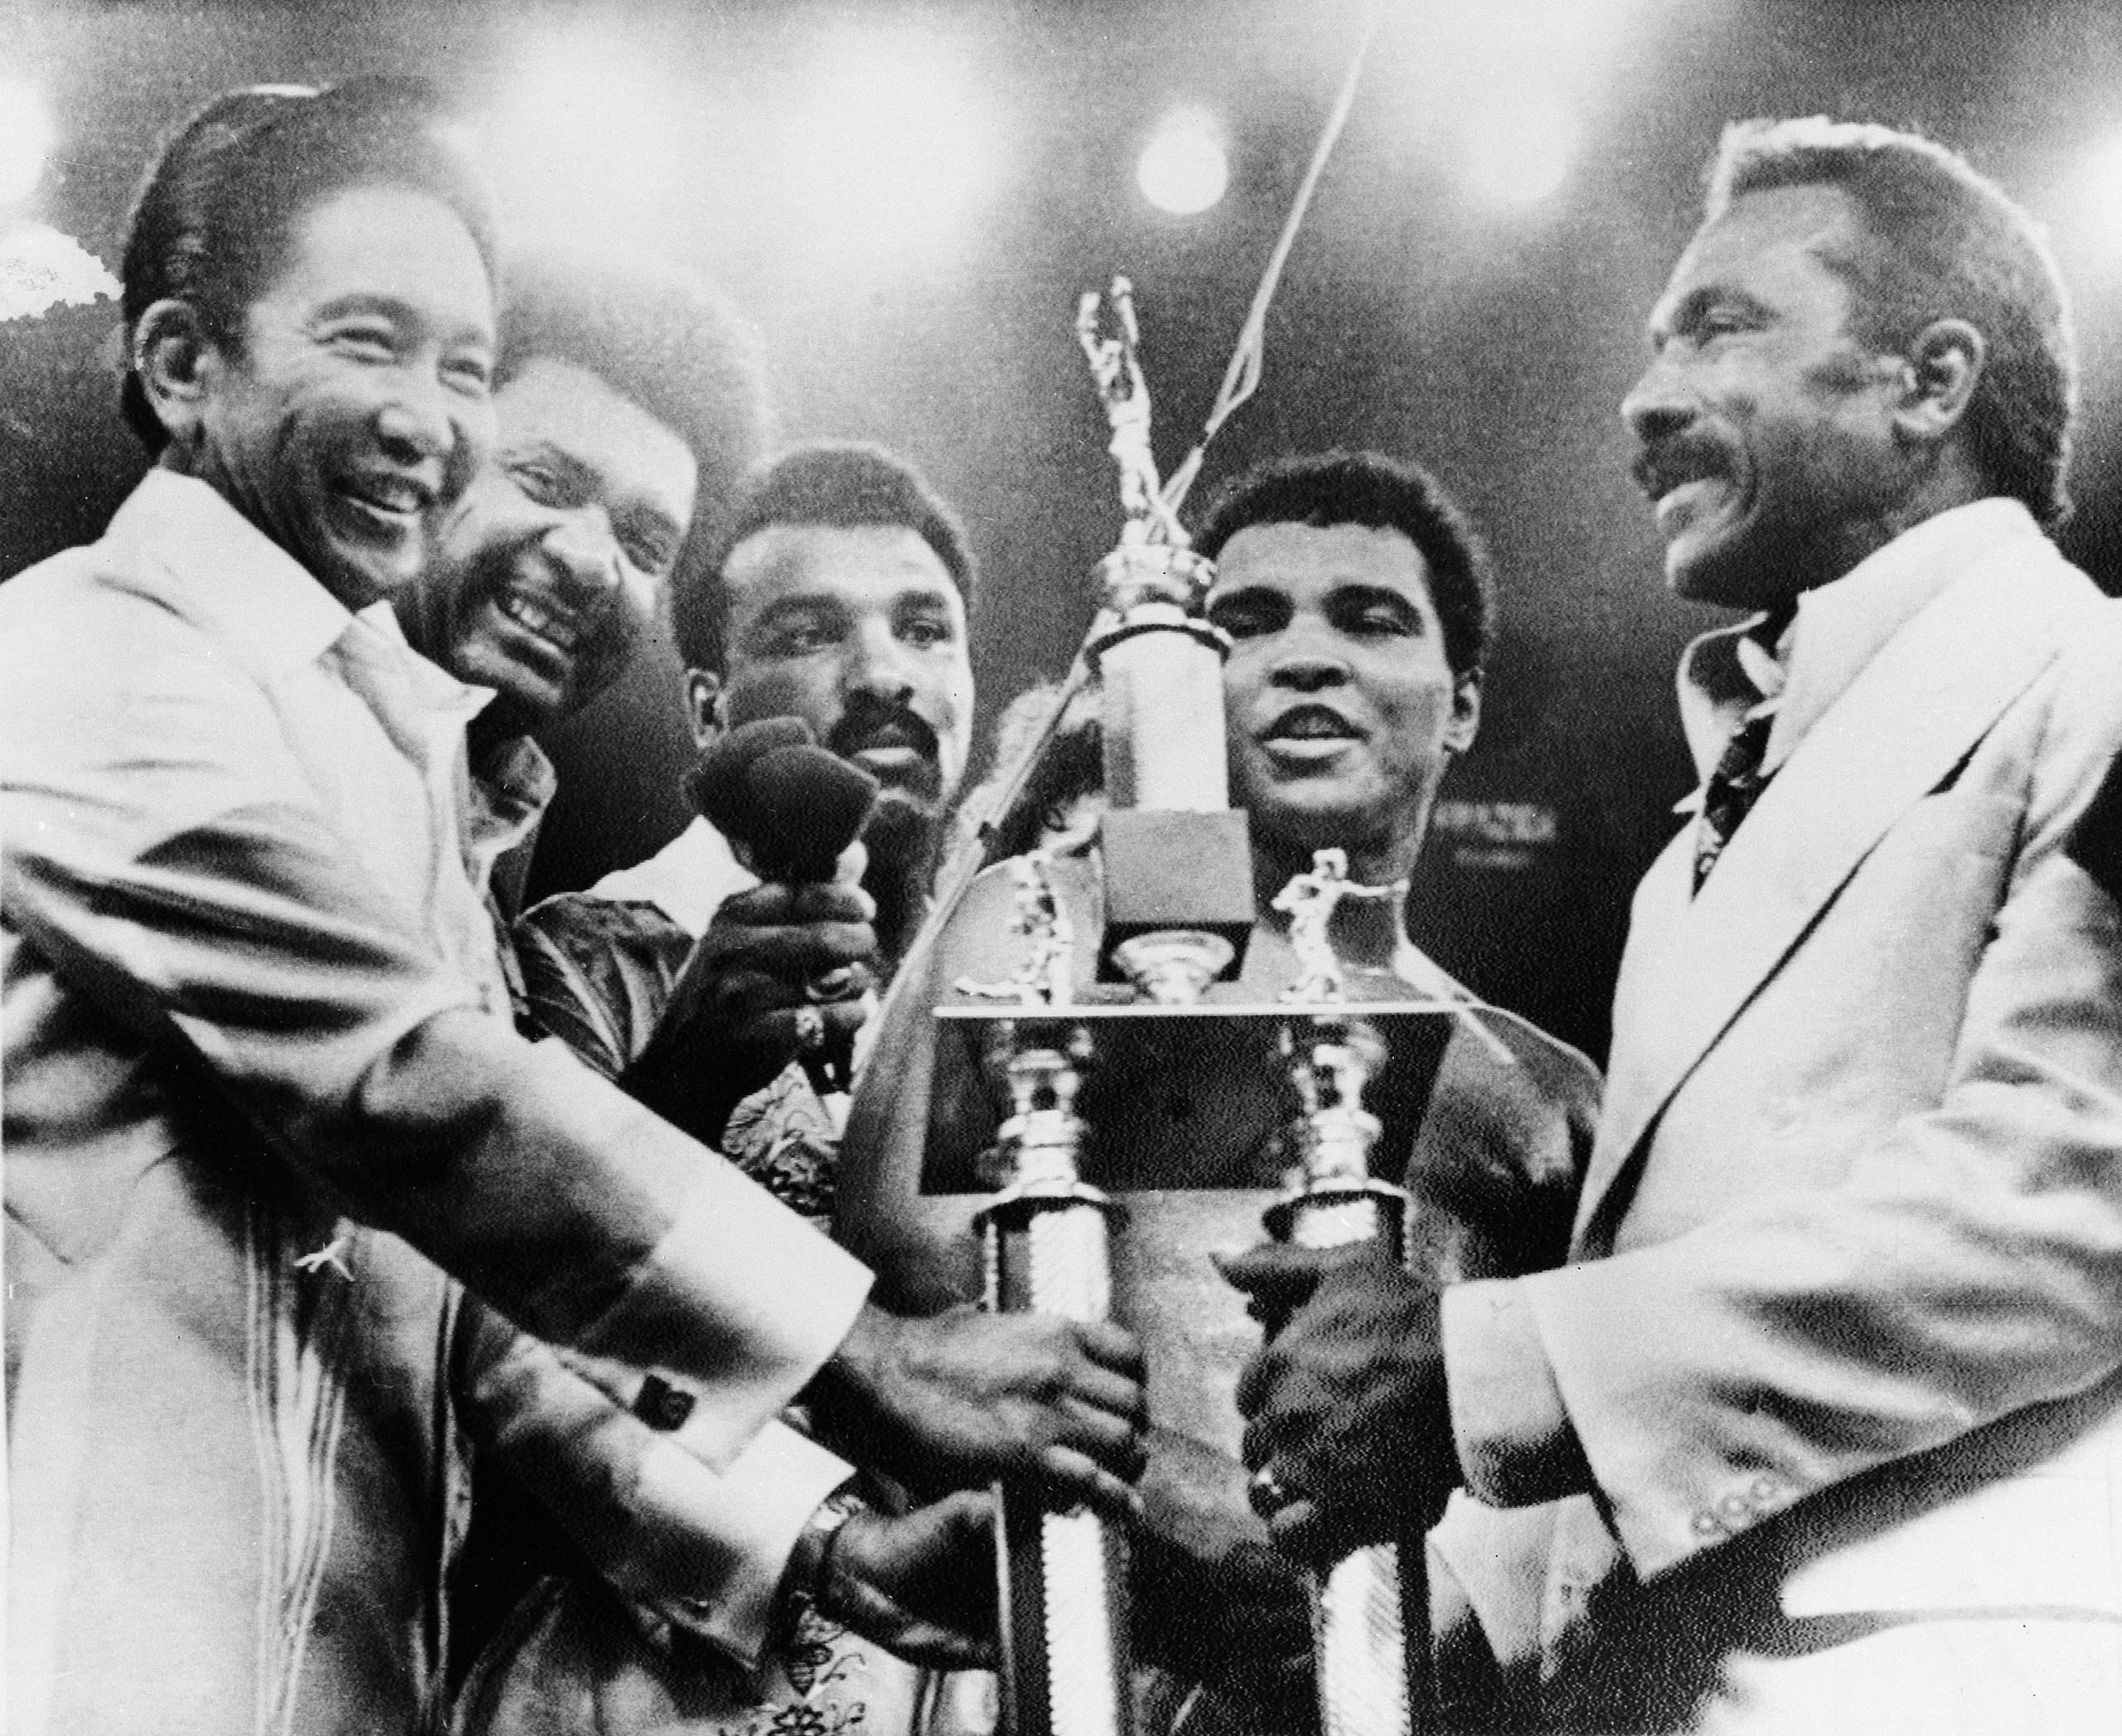 President Ferdinand Marcos, left, of the Philippines, presents the President's Trophy to heavyweight champion Muhammad Ali, second from right, after Ali defeated Joe Frazier in their  Thrilla in Manila  fight at the Coliseum in Manila, Oct. 1, 1975.  Posing from left are, President Marcos; promoter Don King; Ali's brother, Rahman; Ali, and his father Cassius Marcellus Clay Sr., right.